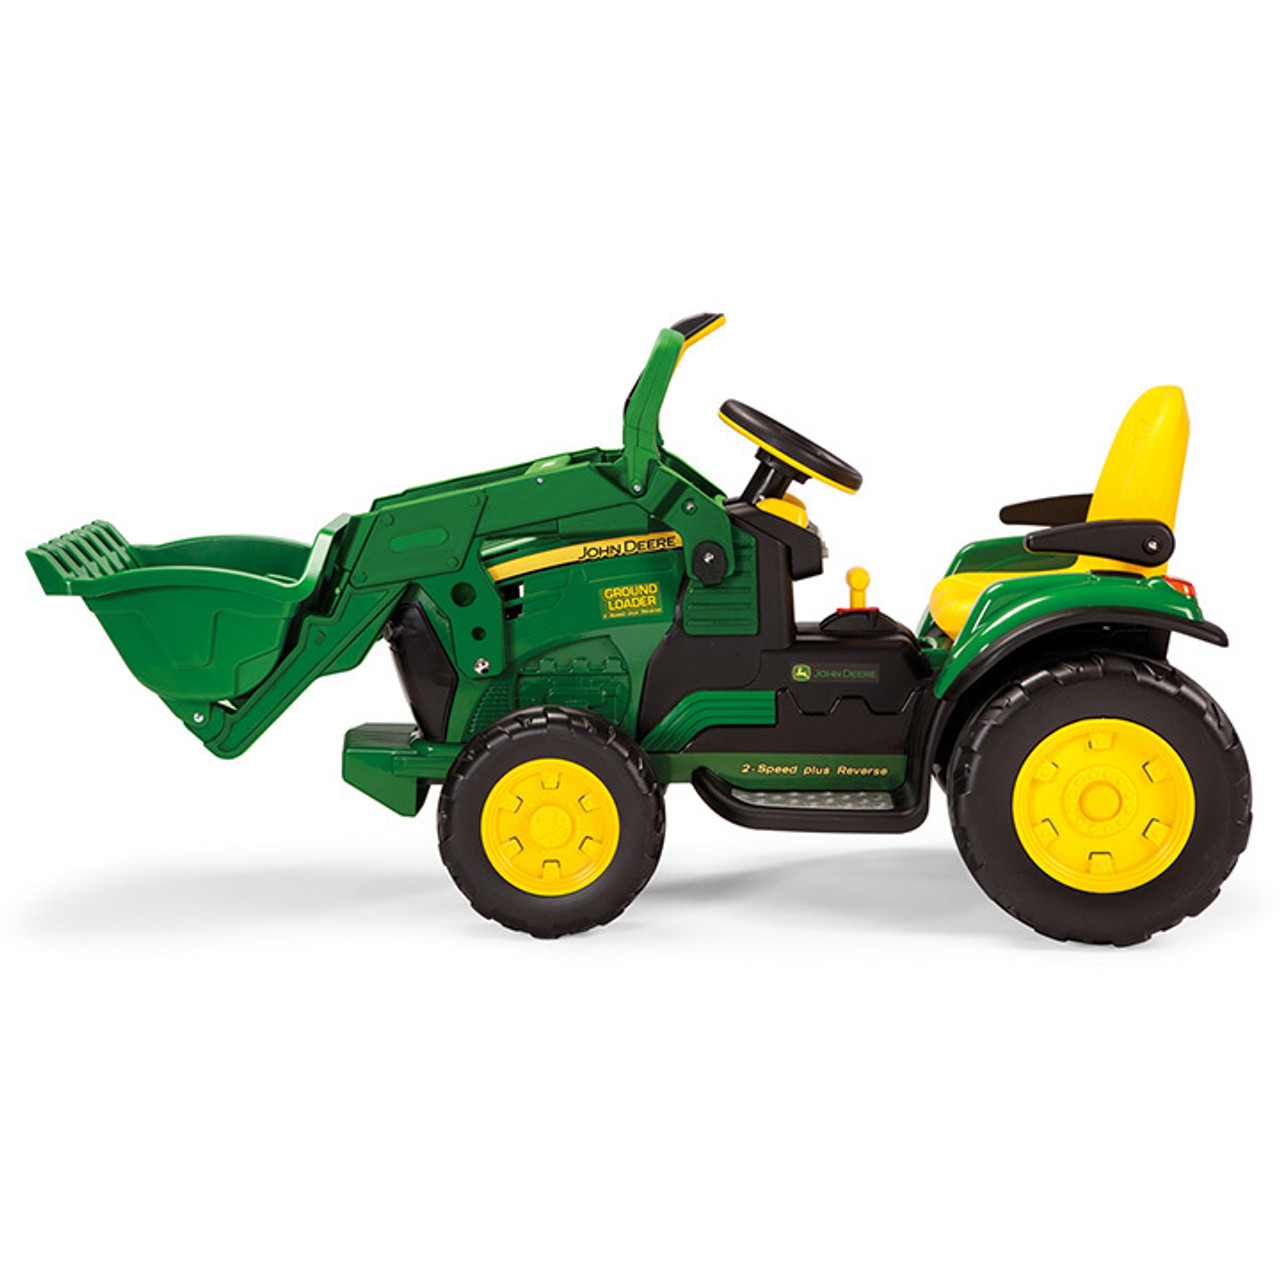 john deere toy vehicles is a quality brand for the modern child. 12v John Deere Ground Loader Kids Ride On Tractor Kids Tractors Uk